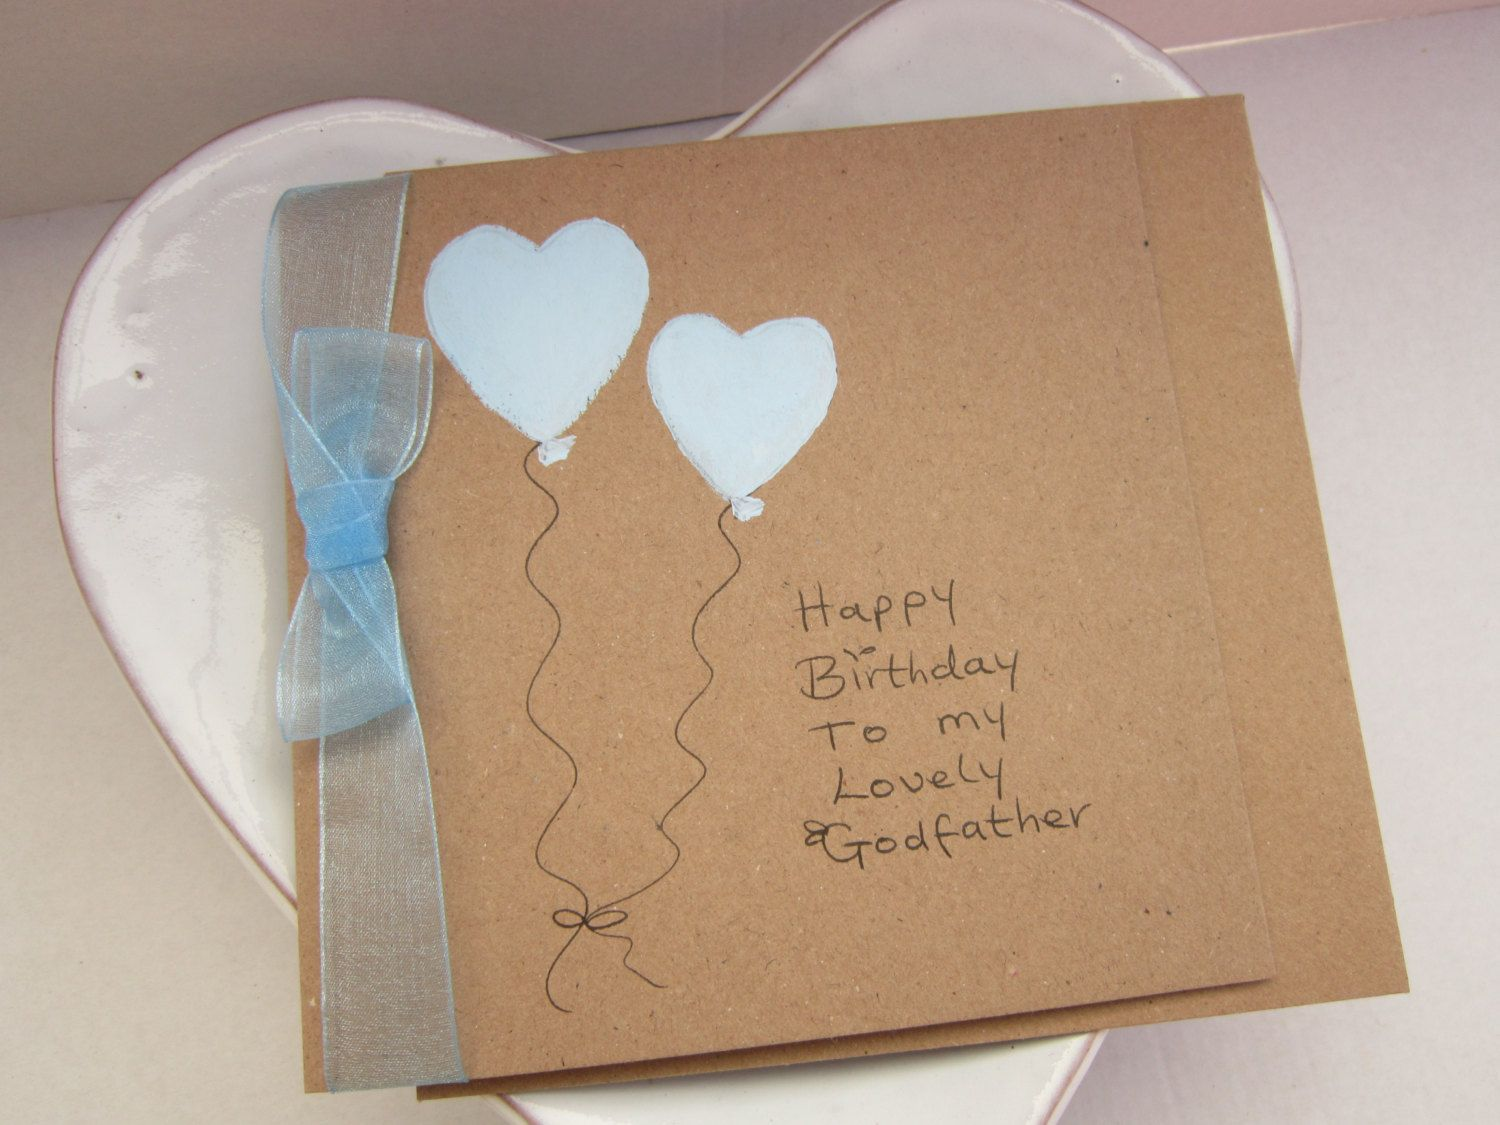 Godfather Card Handpainted Blue Hearts For Birthday Gift Handmad Rustice By